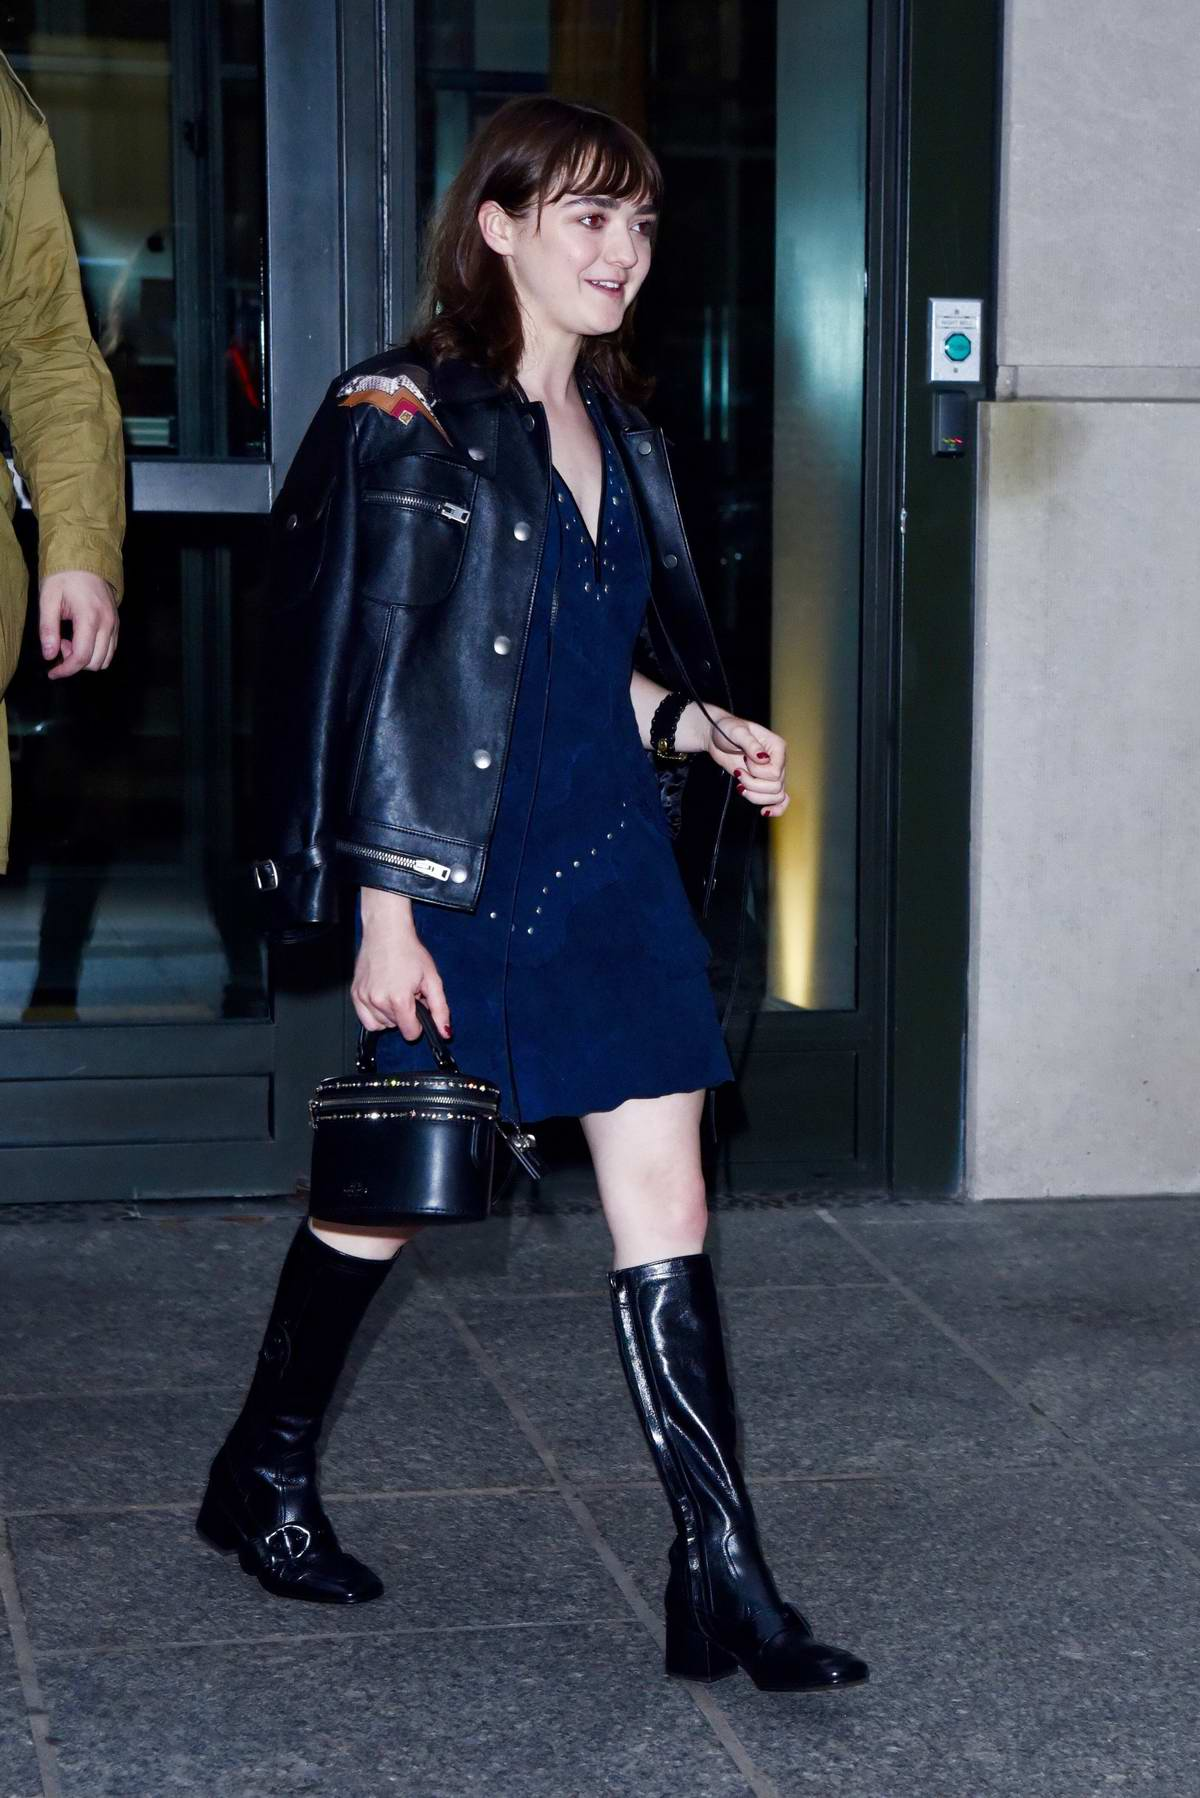 Maisie Williams spotted in black leather jacket over a blue dress with knee high black boots while out in New York City